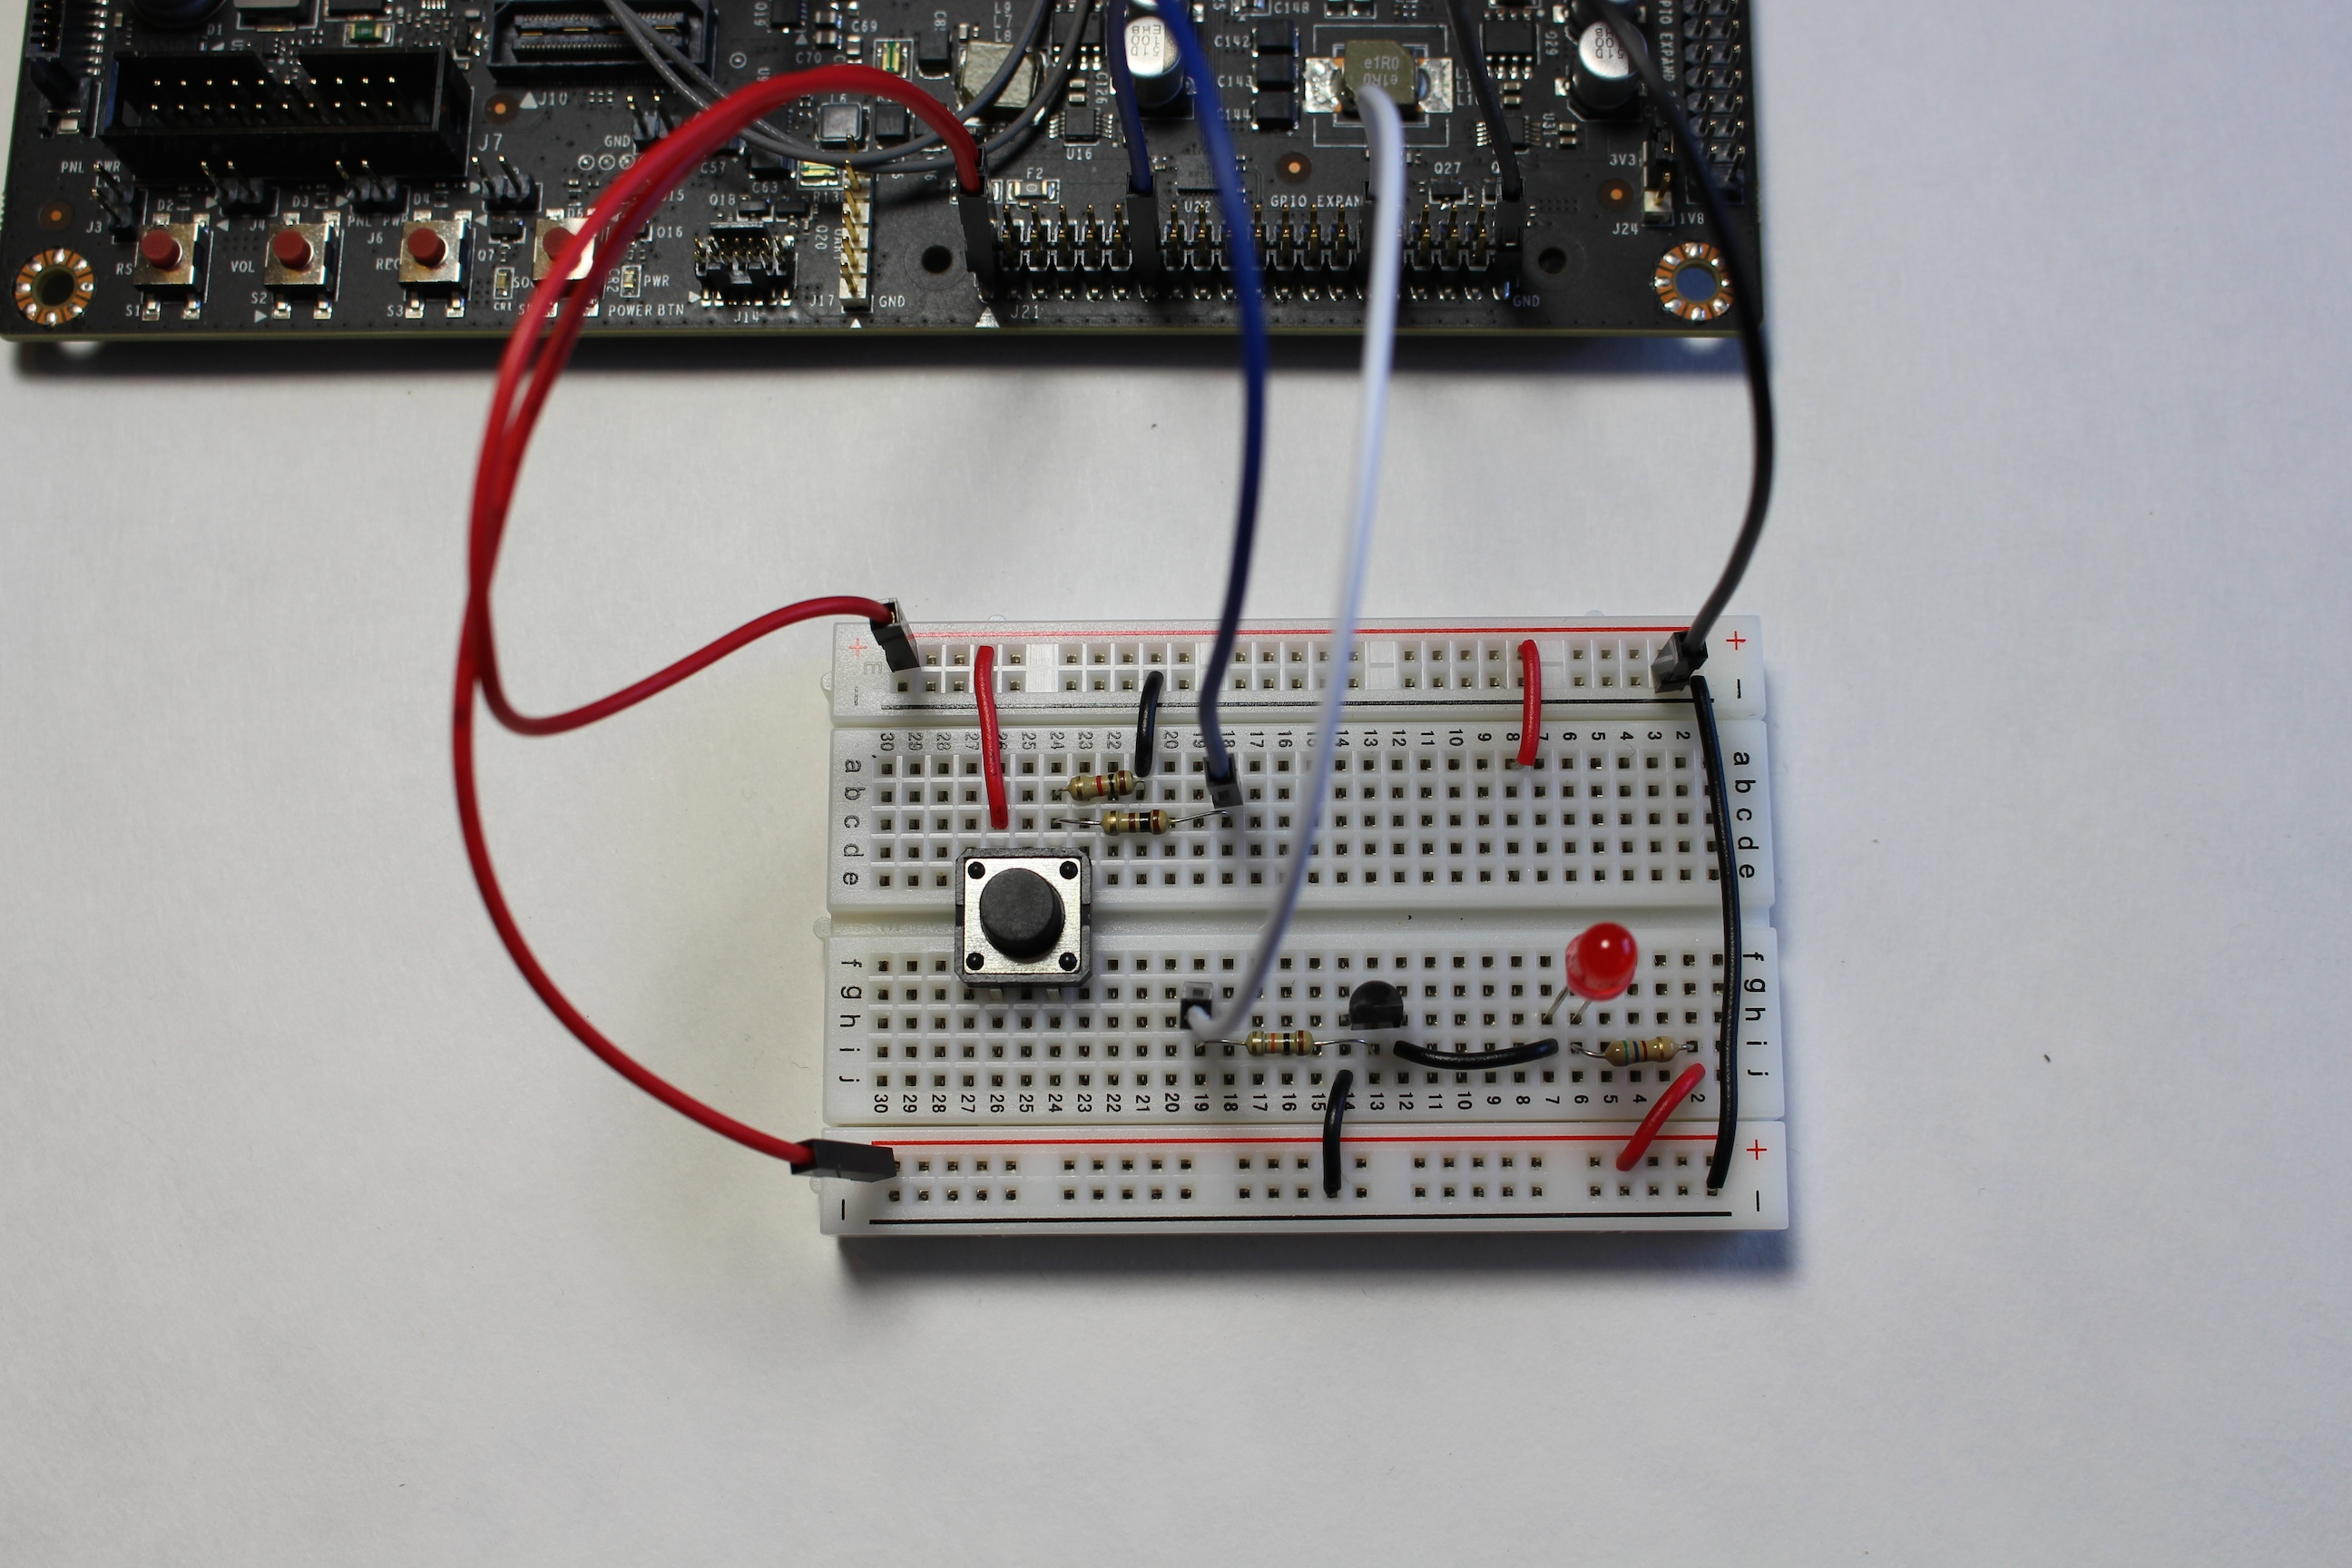 Interfacing GPIO on the Jetson TX1 with a breadboard